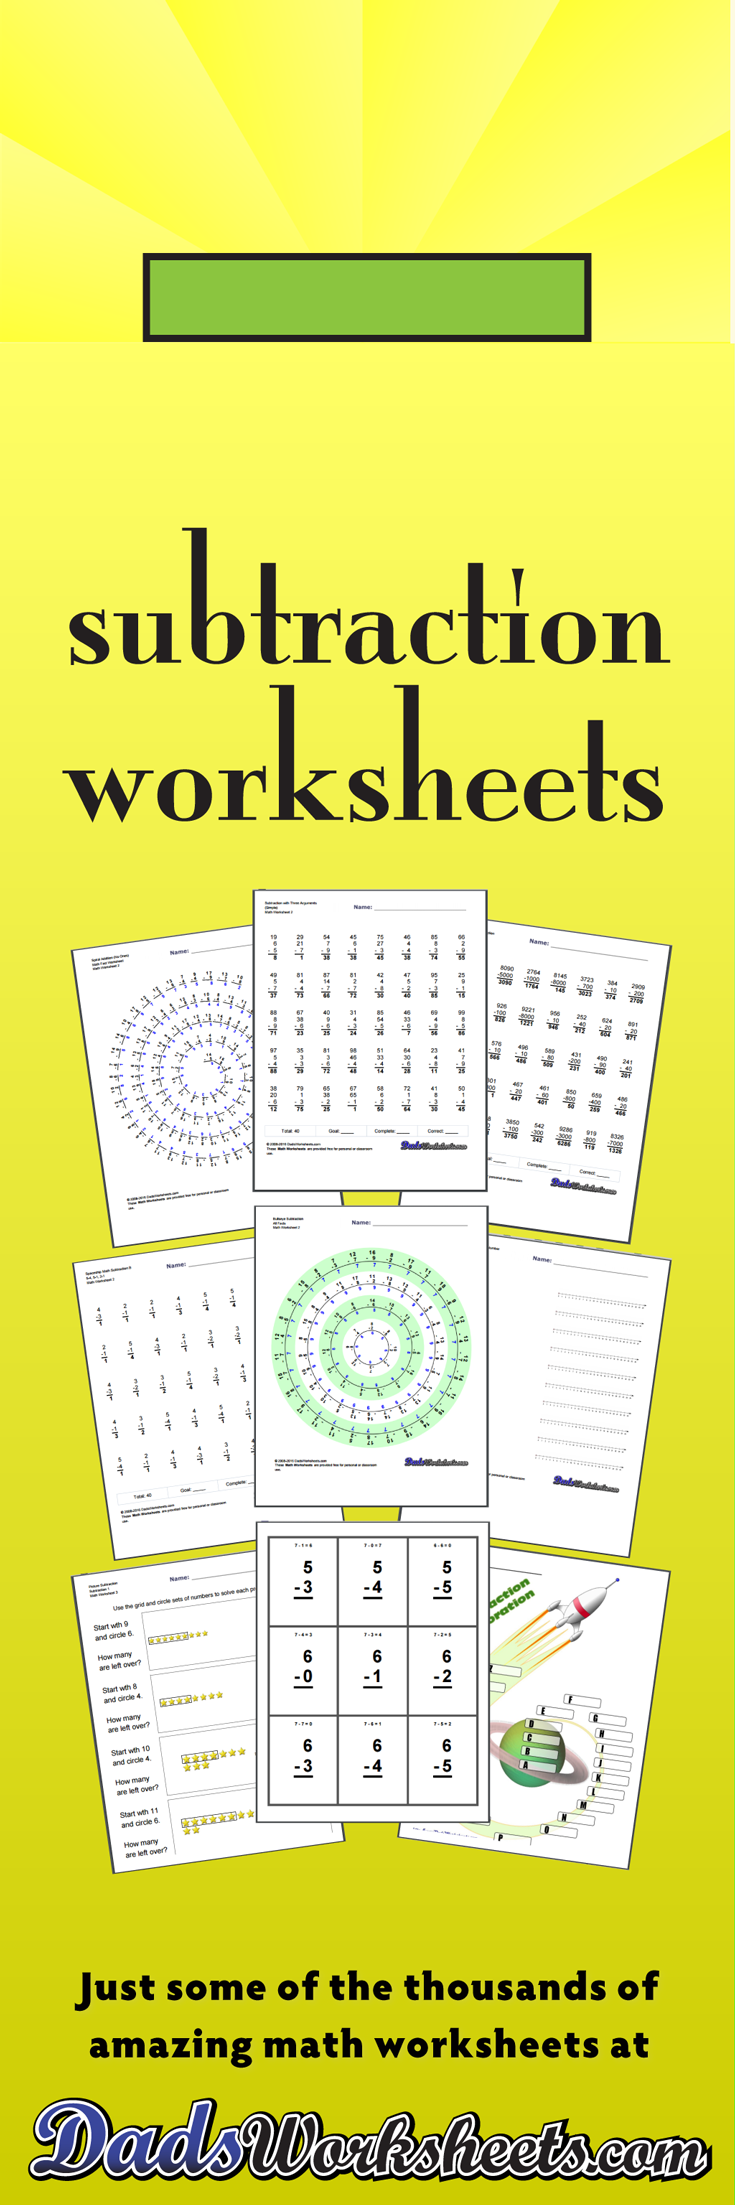 worksheet. Math Facts Subtraction. Grass Fedjp Worksheet Study Site